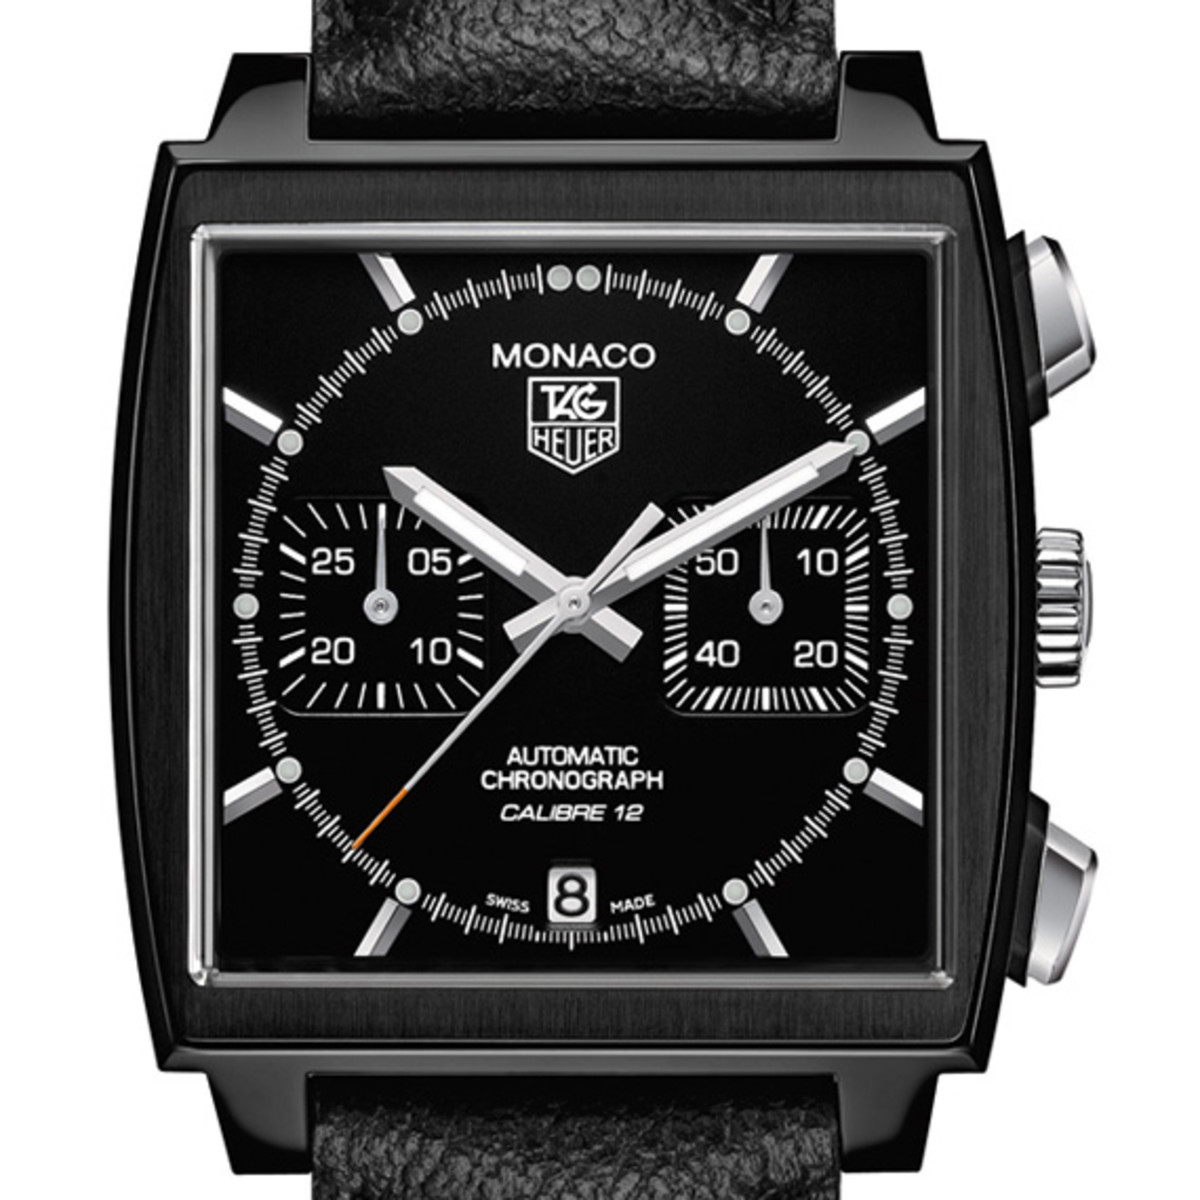 tag-heuer-monaco-calibre-12-automatic-chronograph-acm-limited-edition-01